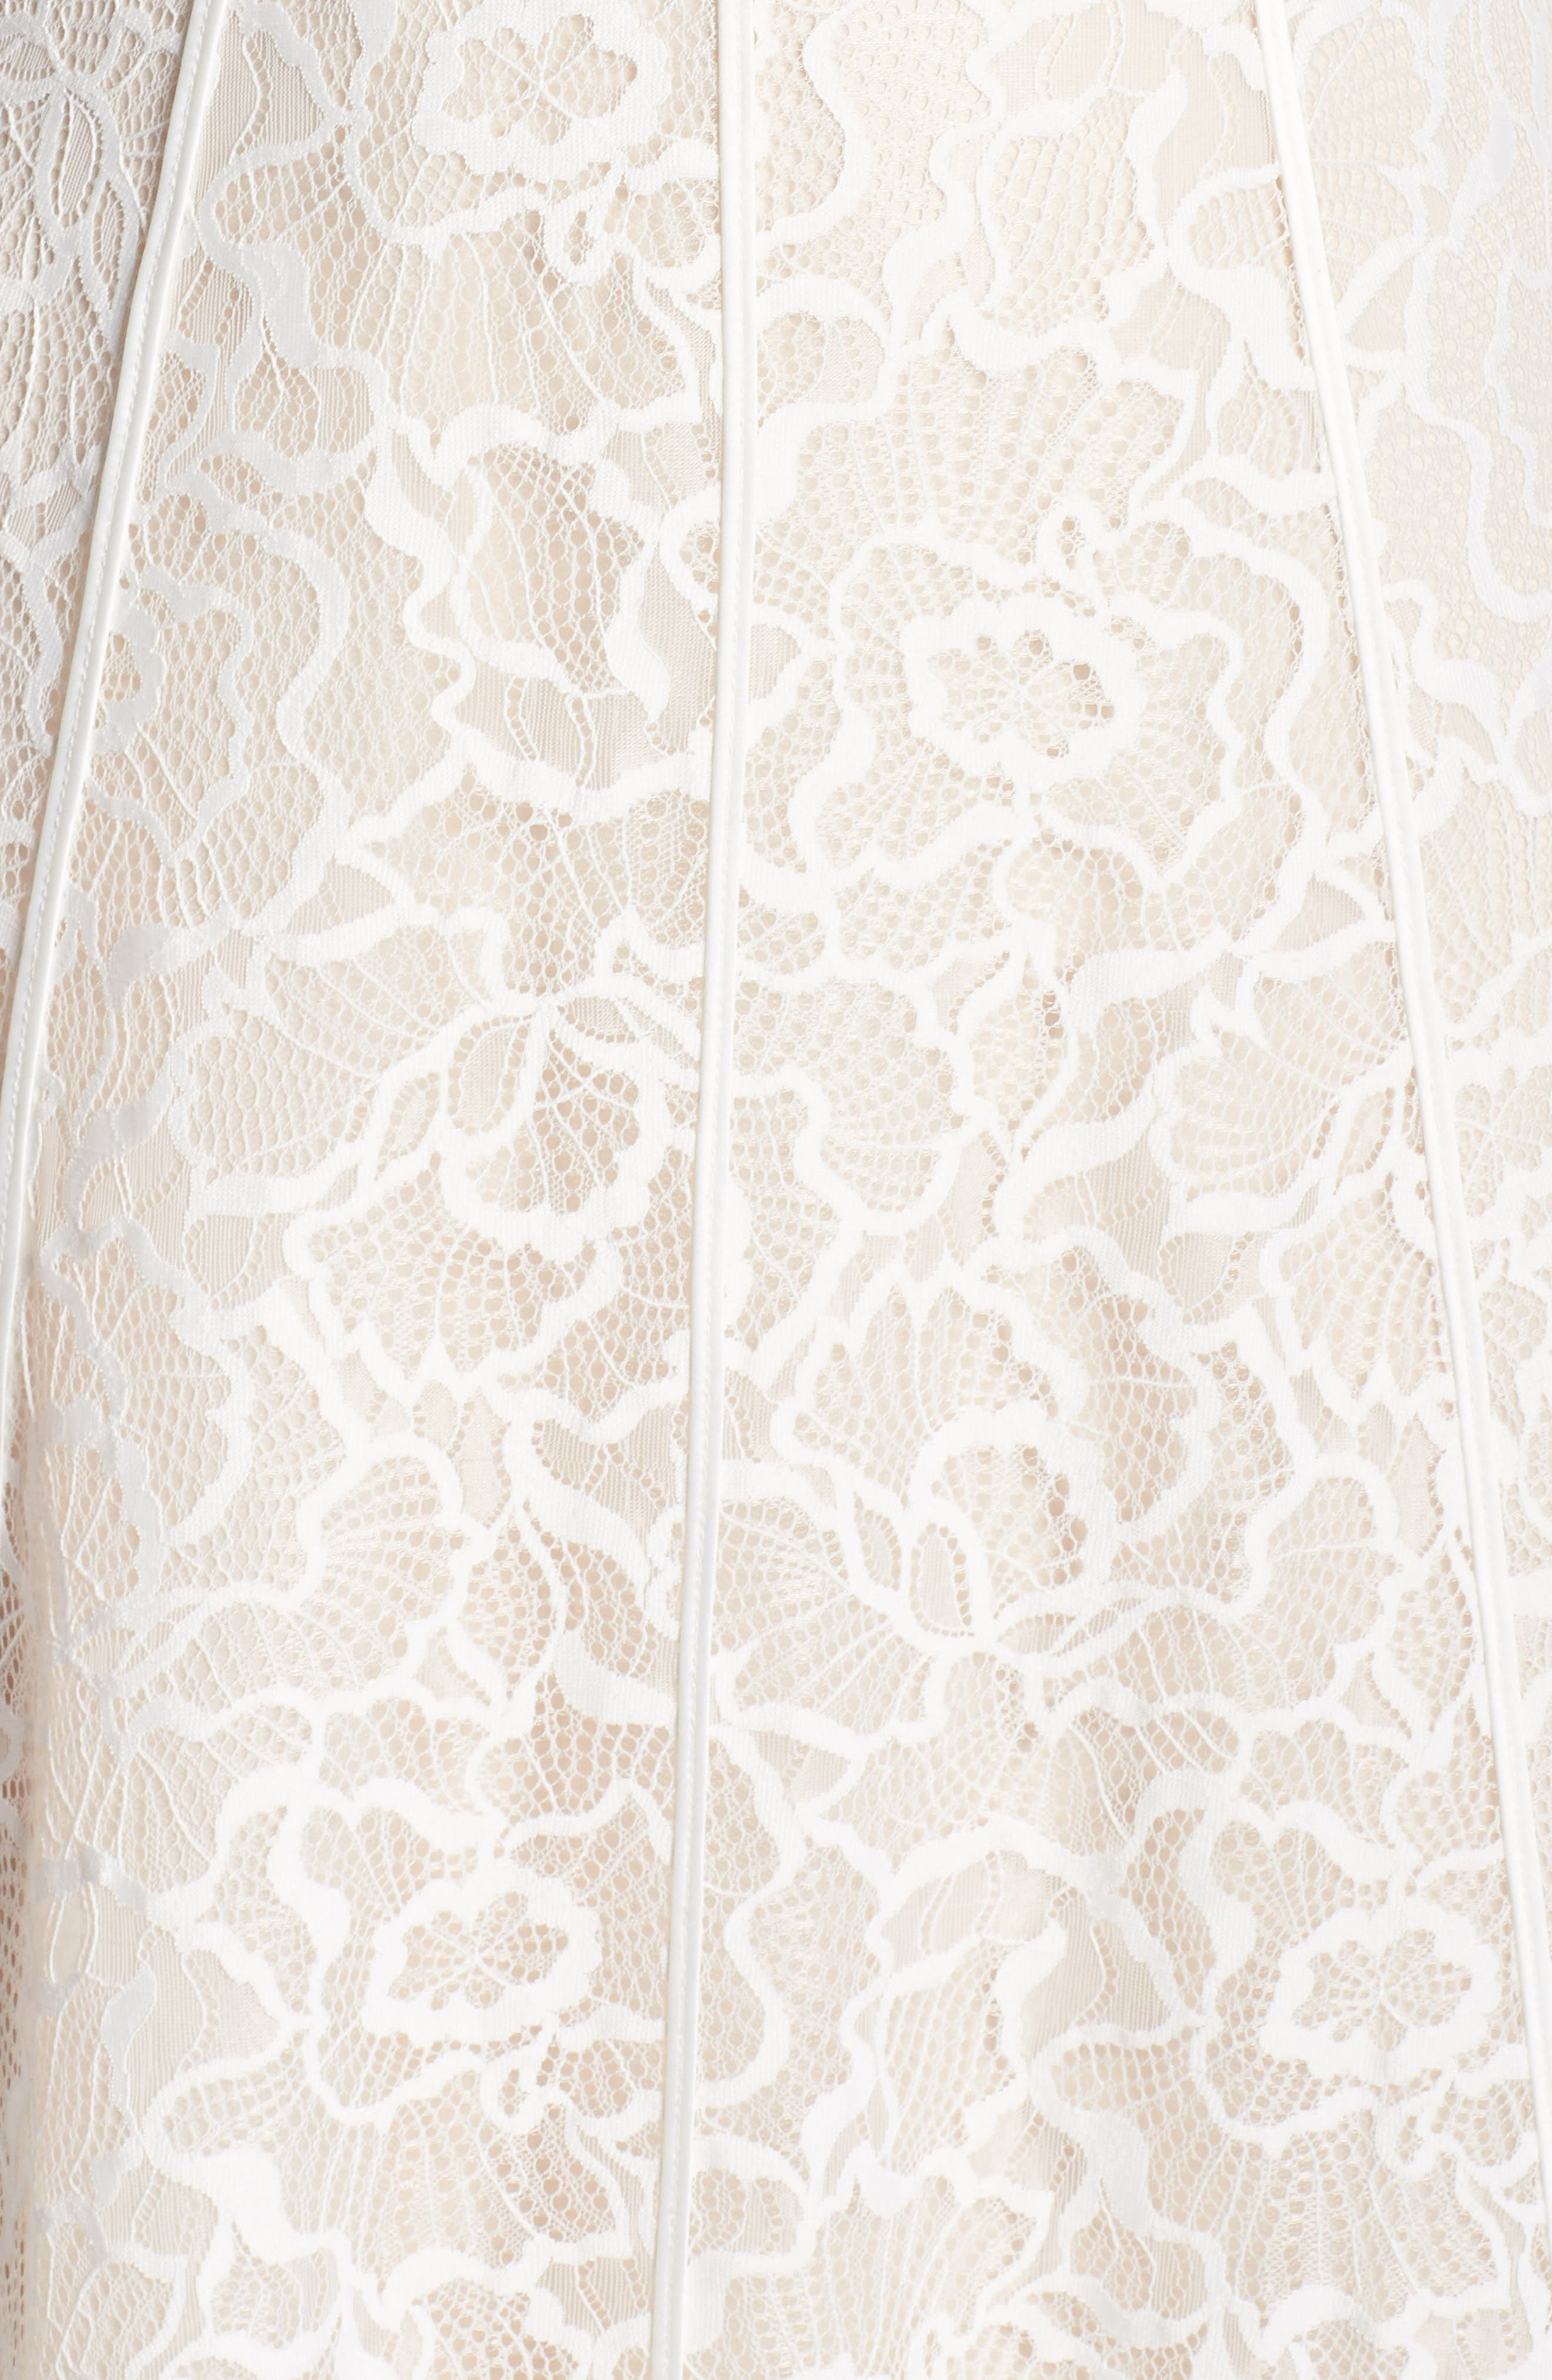 Sheer Sleeve Lace A-Line Gown,                             Alternate thumbnail 5, color,                             IVORY/ PETAL